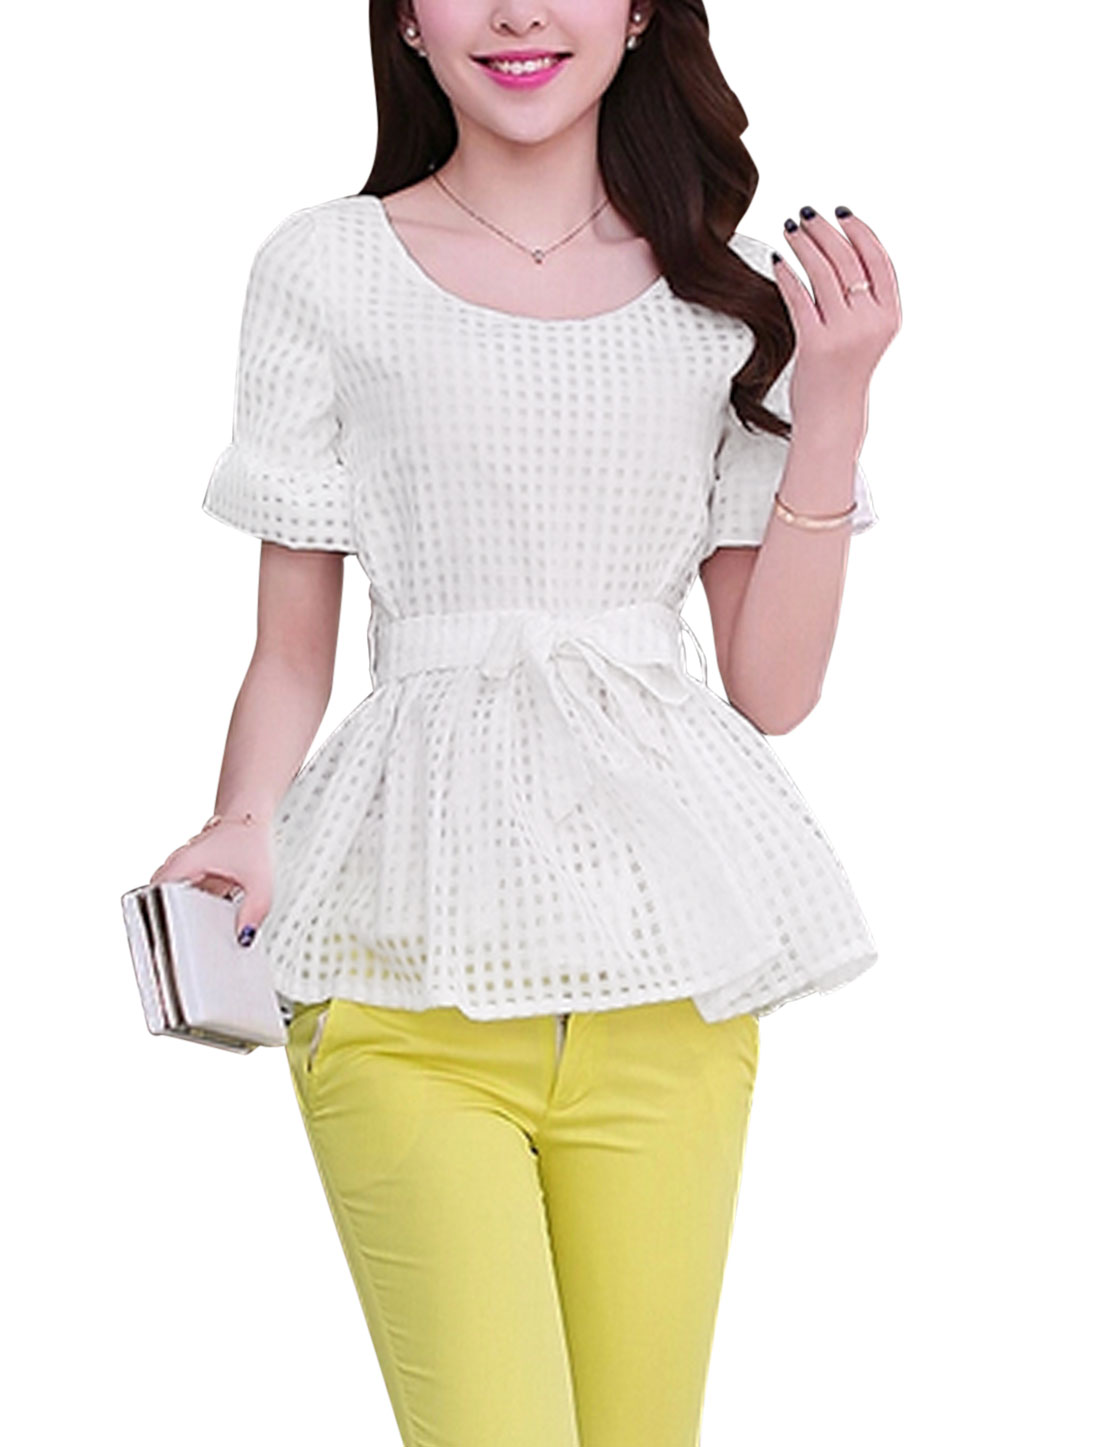 Lady Plaids Design Hidden Zipper Side Casual Blouse w Belt White S